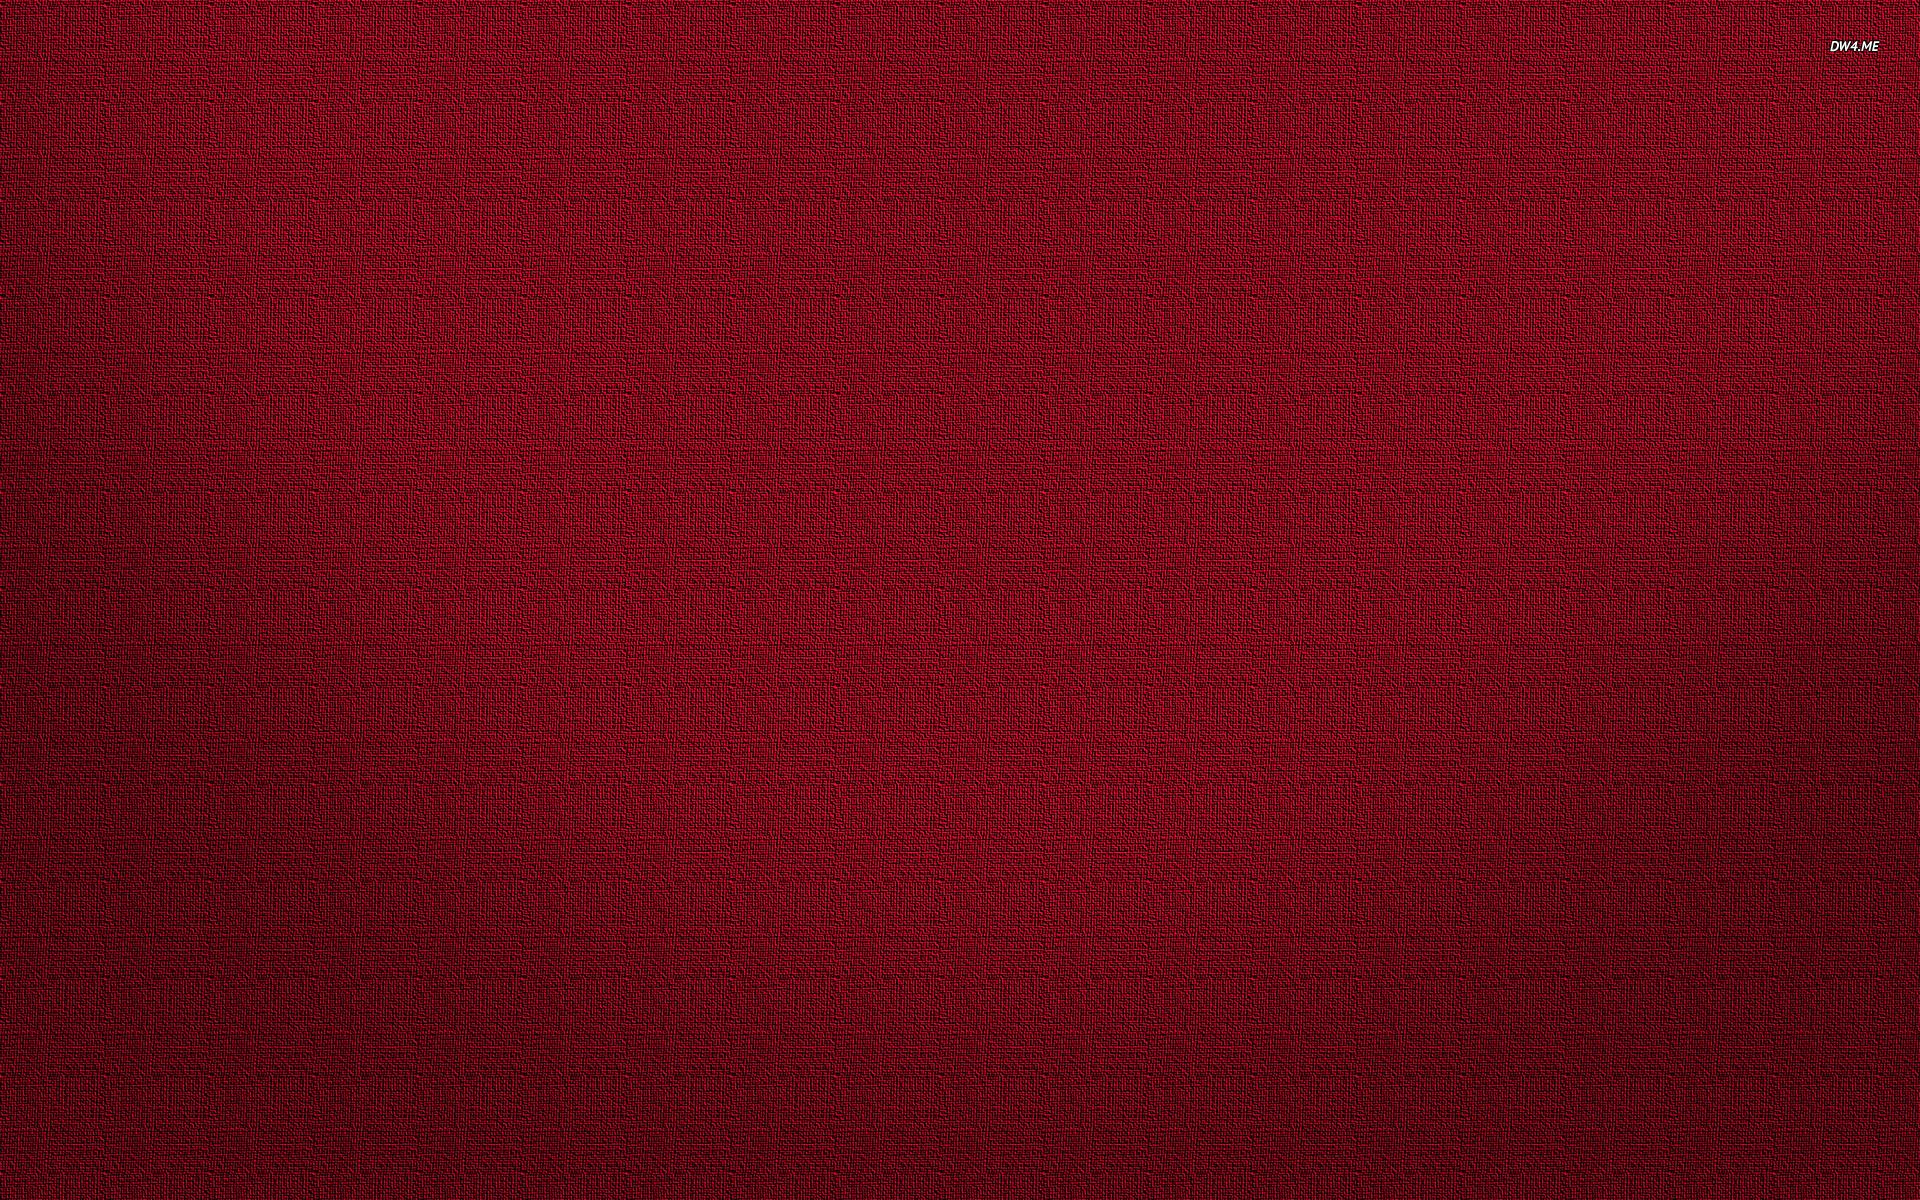 1920x1200 Red fabric wallpaper - Minimalistic wallpapers - #77